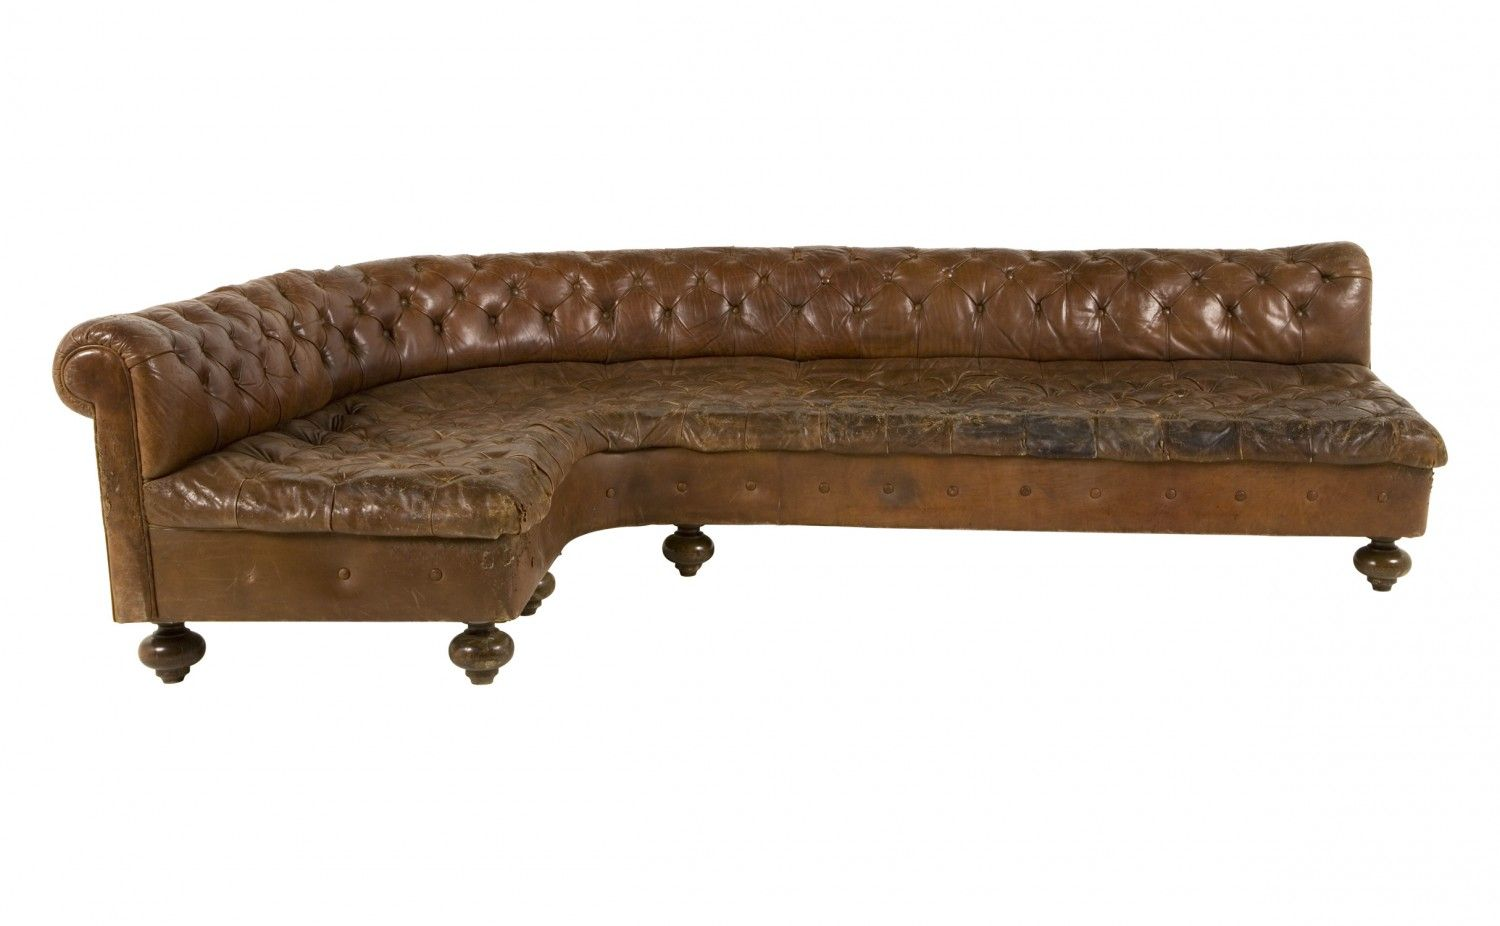 Antique Curved Leather Sofa Jayson Home Leather Sofa Antiques Modern Vintage Furniture